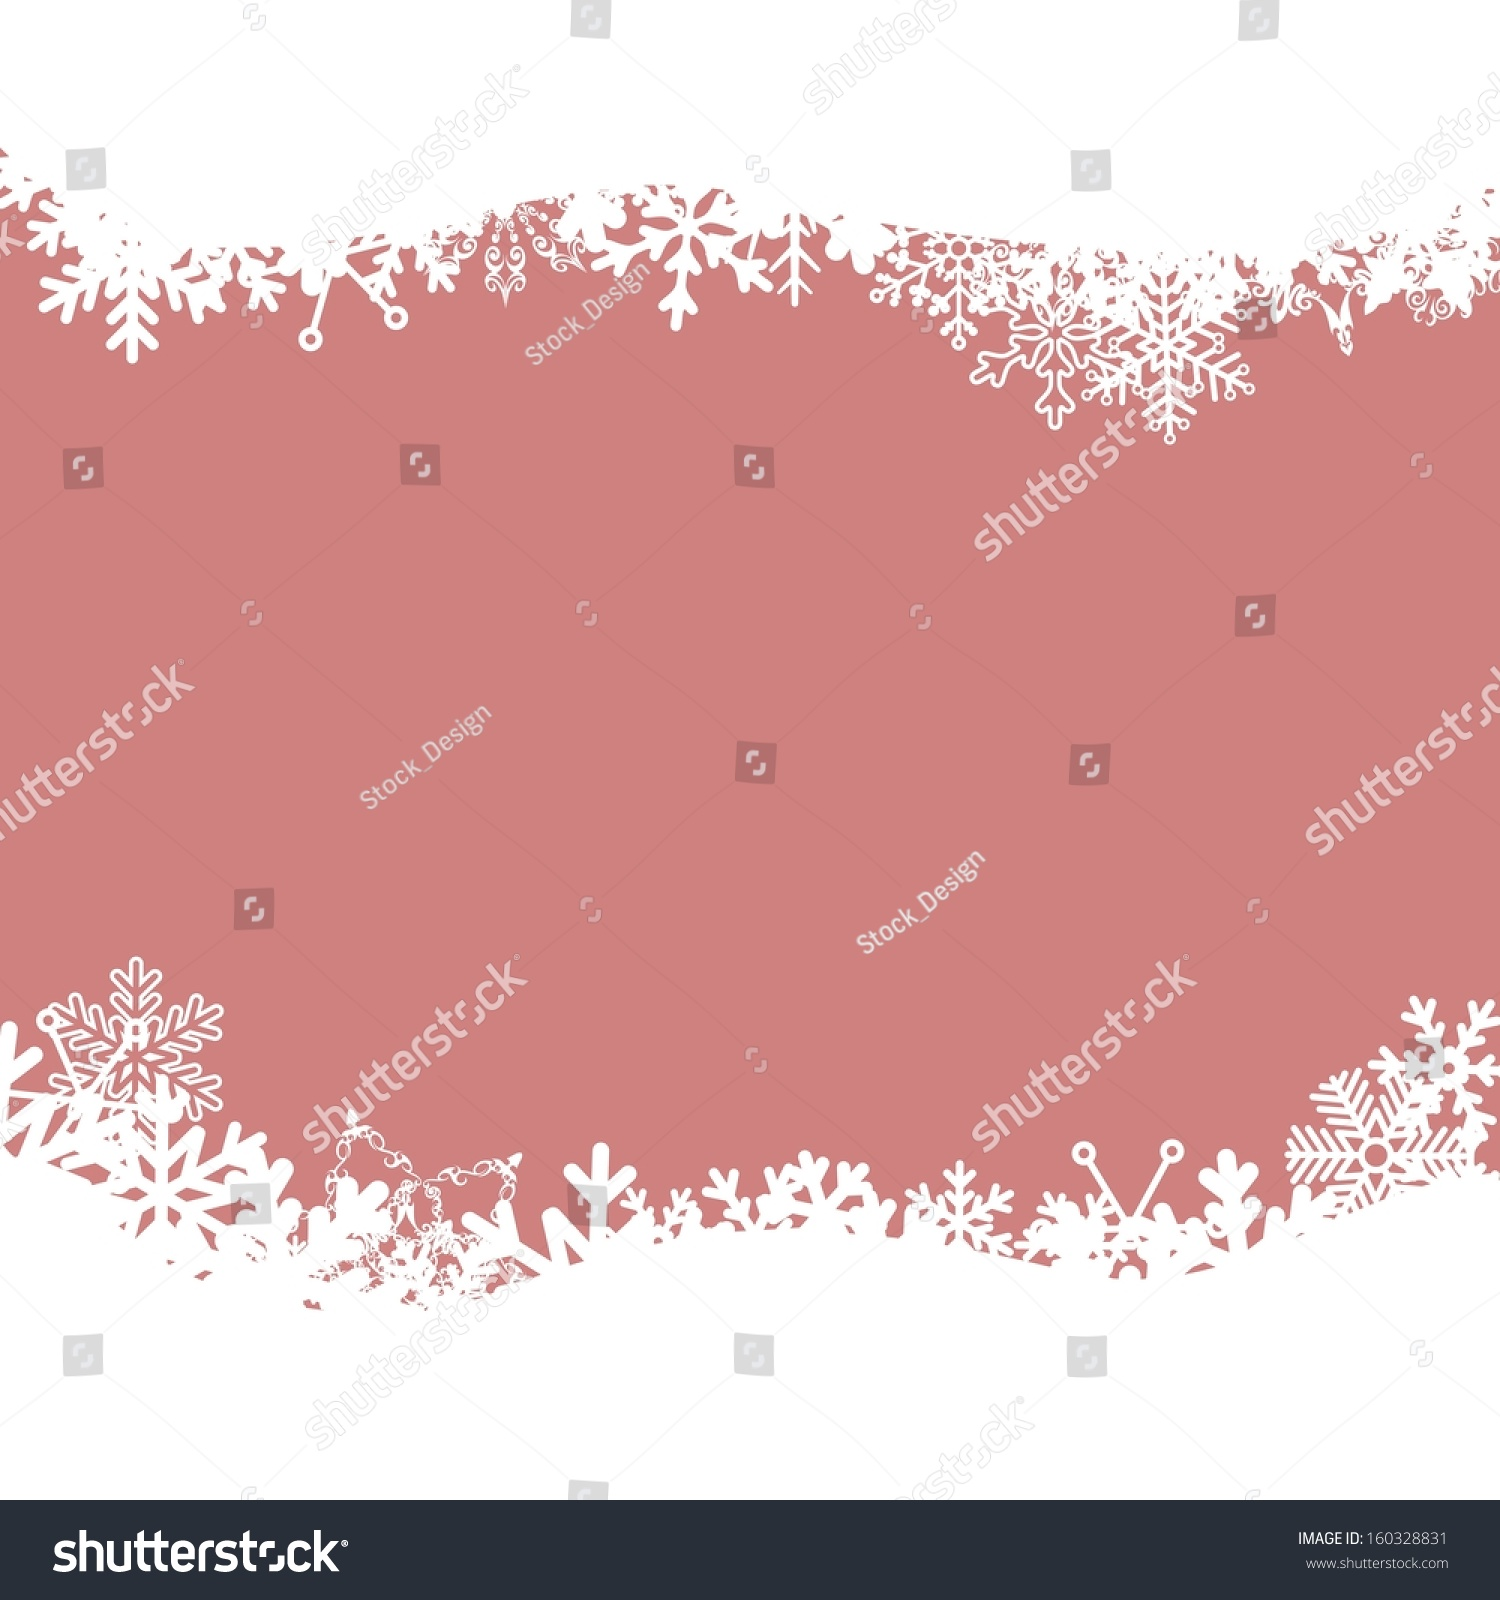 Pink Christmas. Vector background with snowflakes.